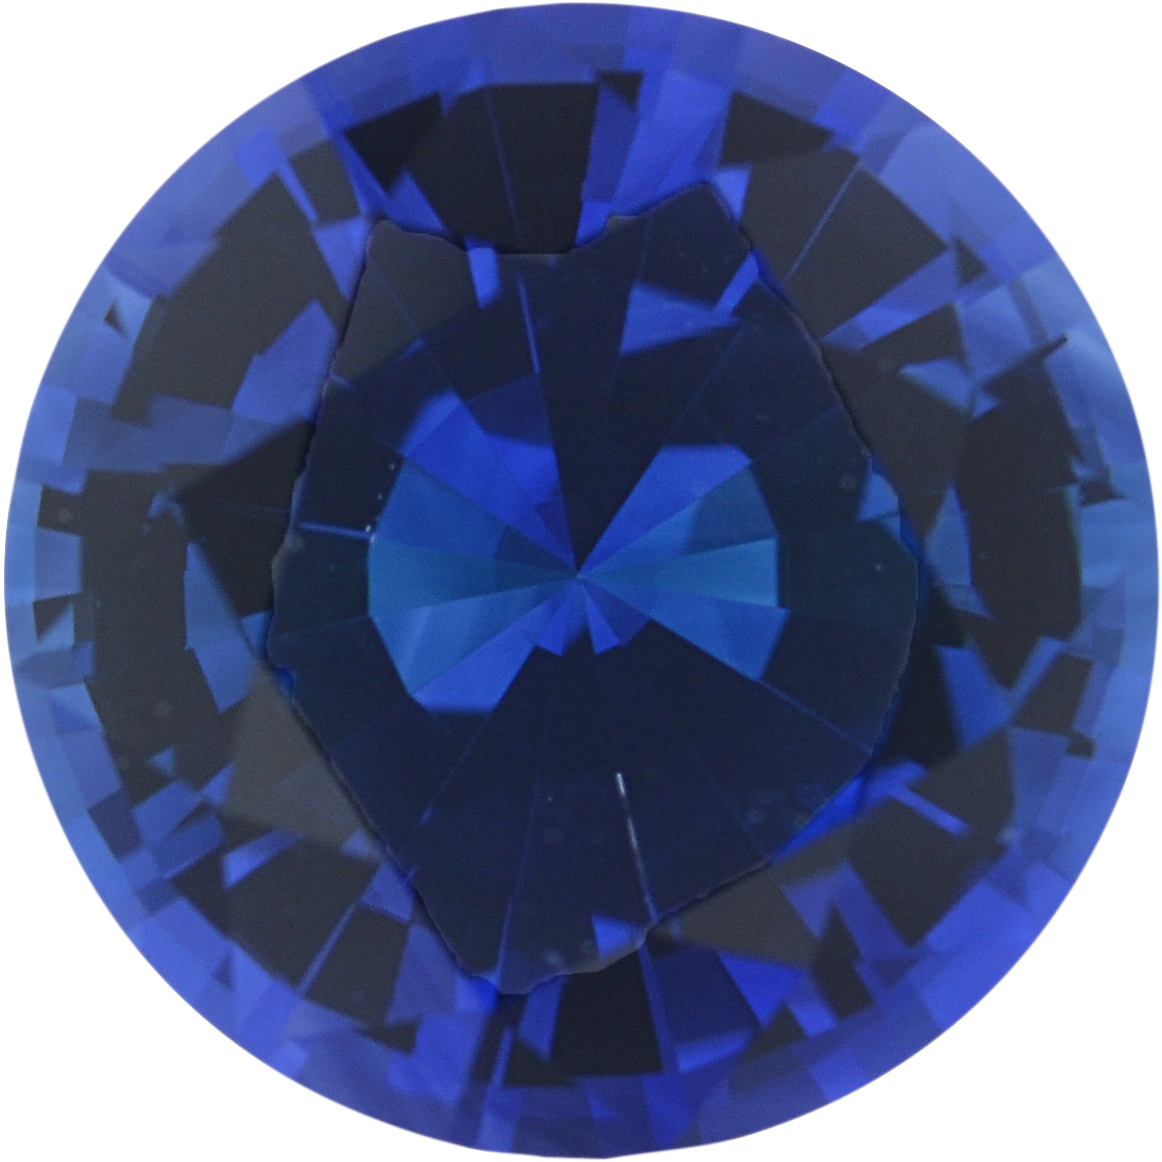 0.93 carats Blue Loose Sapphire Gemstone in Round Cut, 5.94 mm